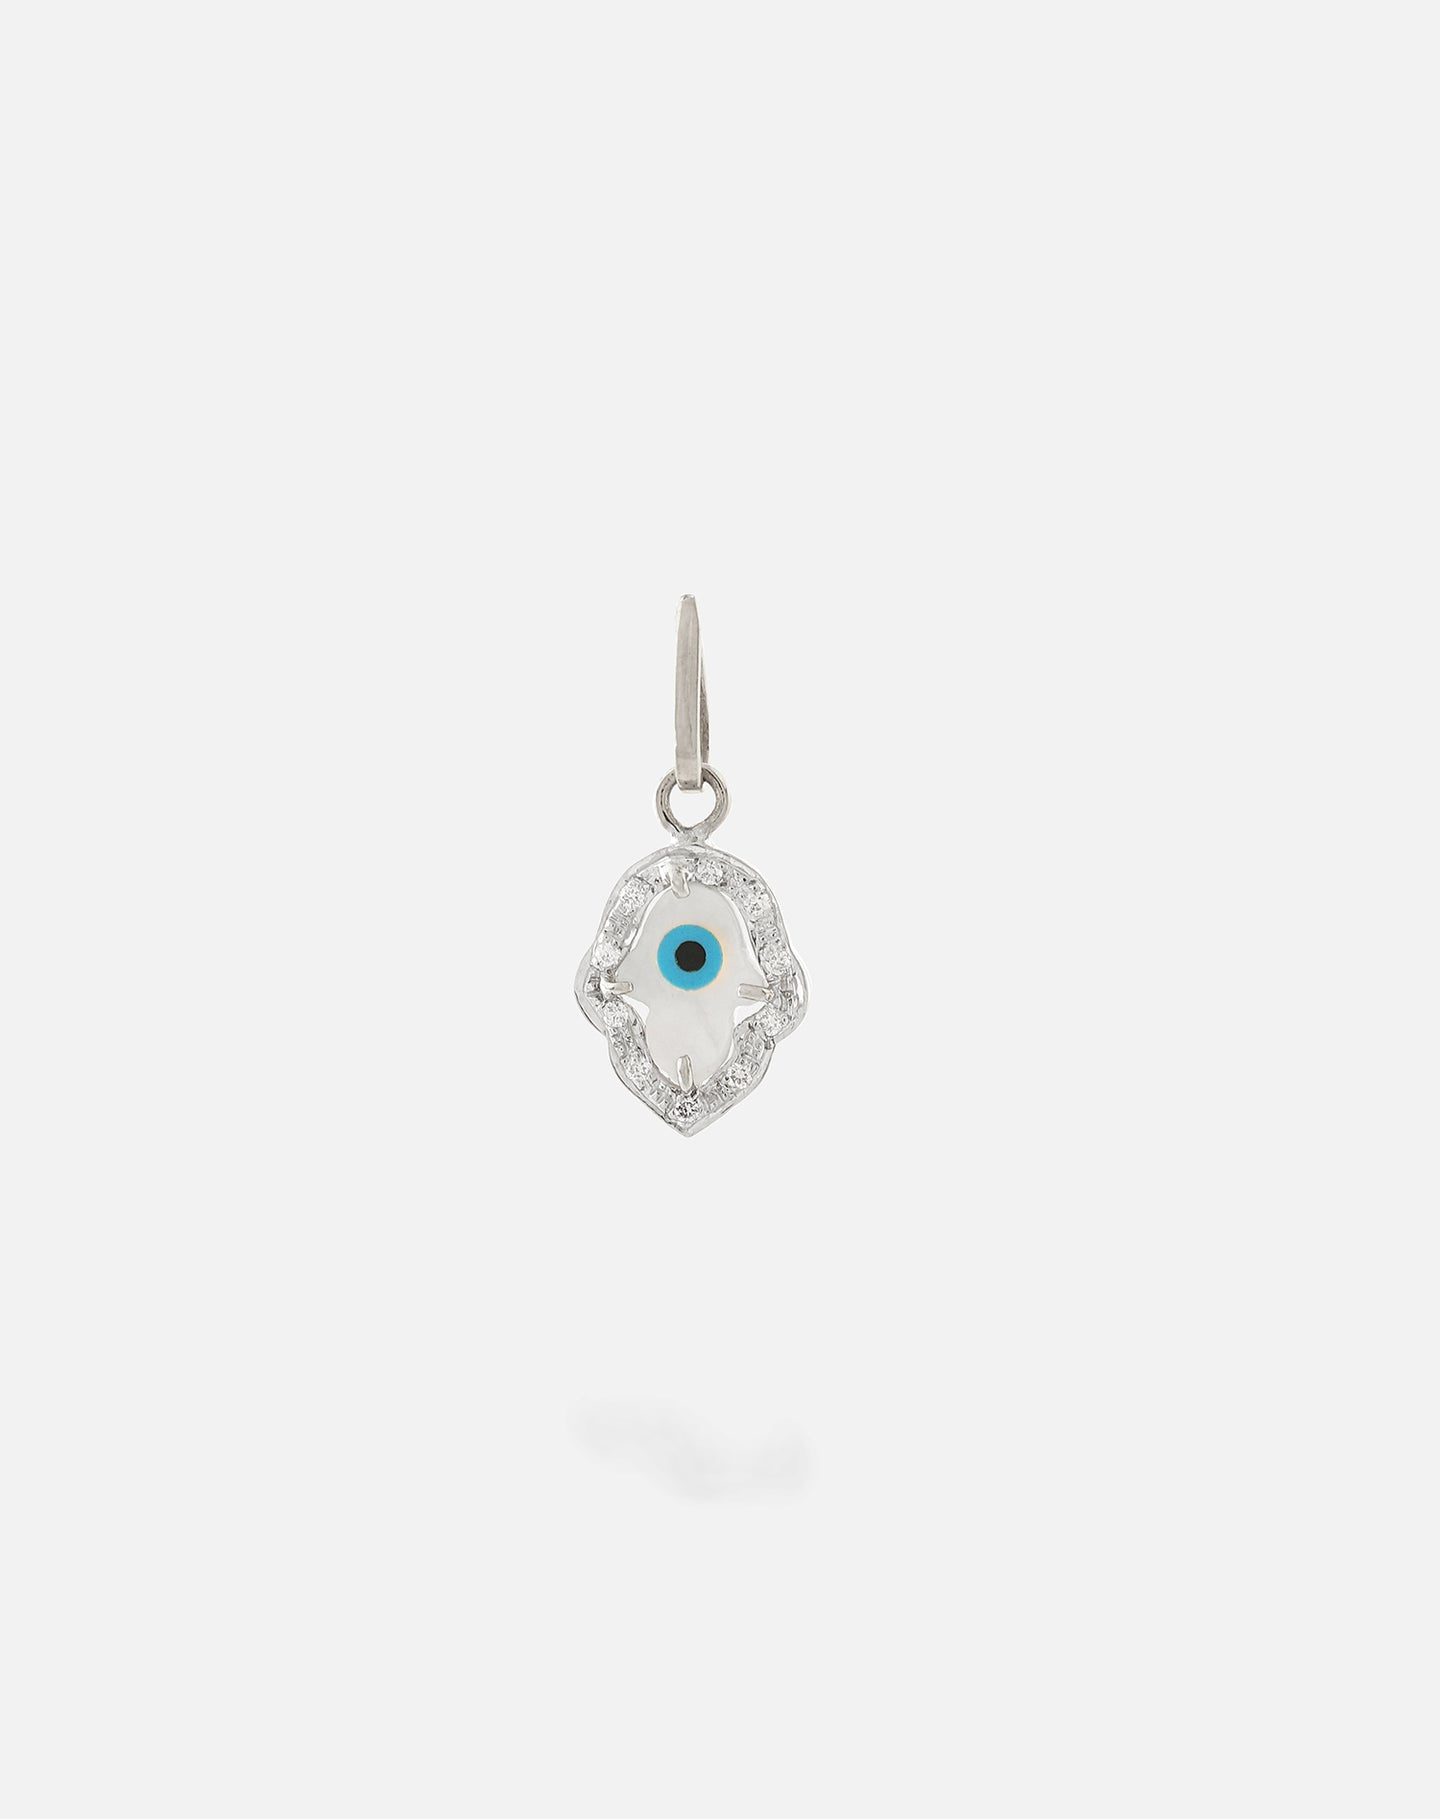 White Gold Evil Eye Charm - Hamsa Hand with Diamonds Small